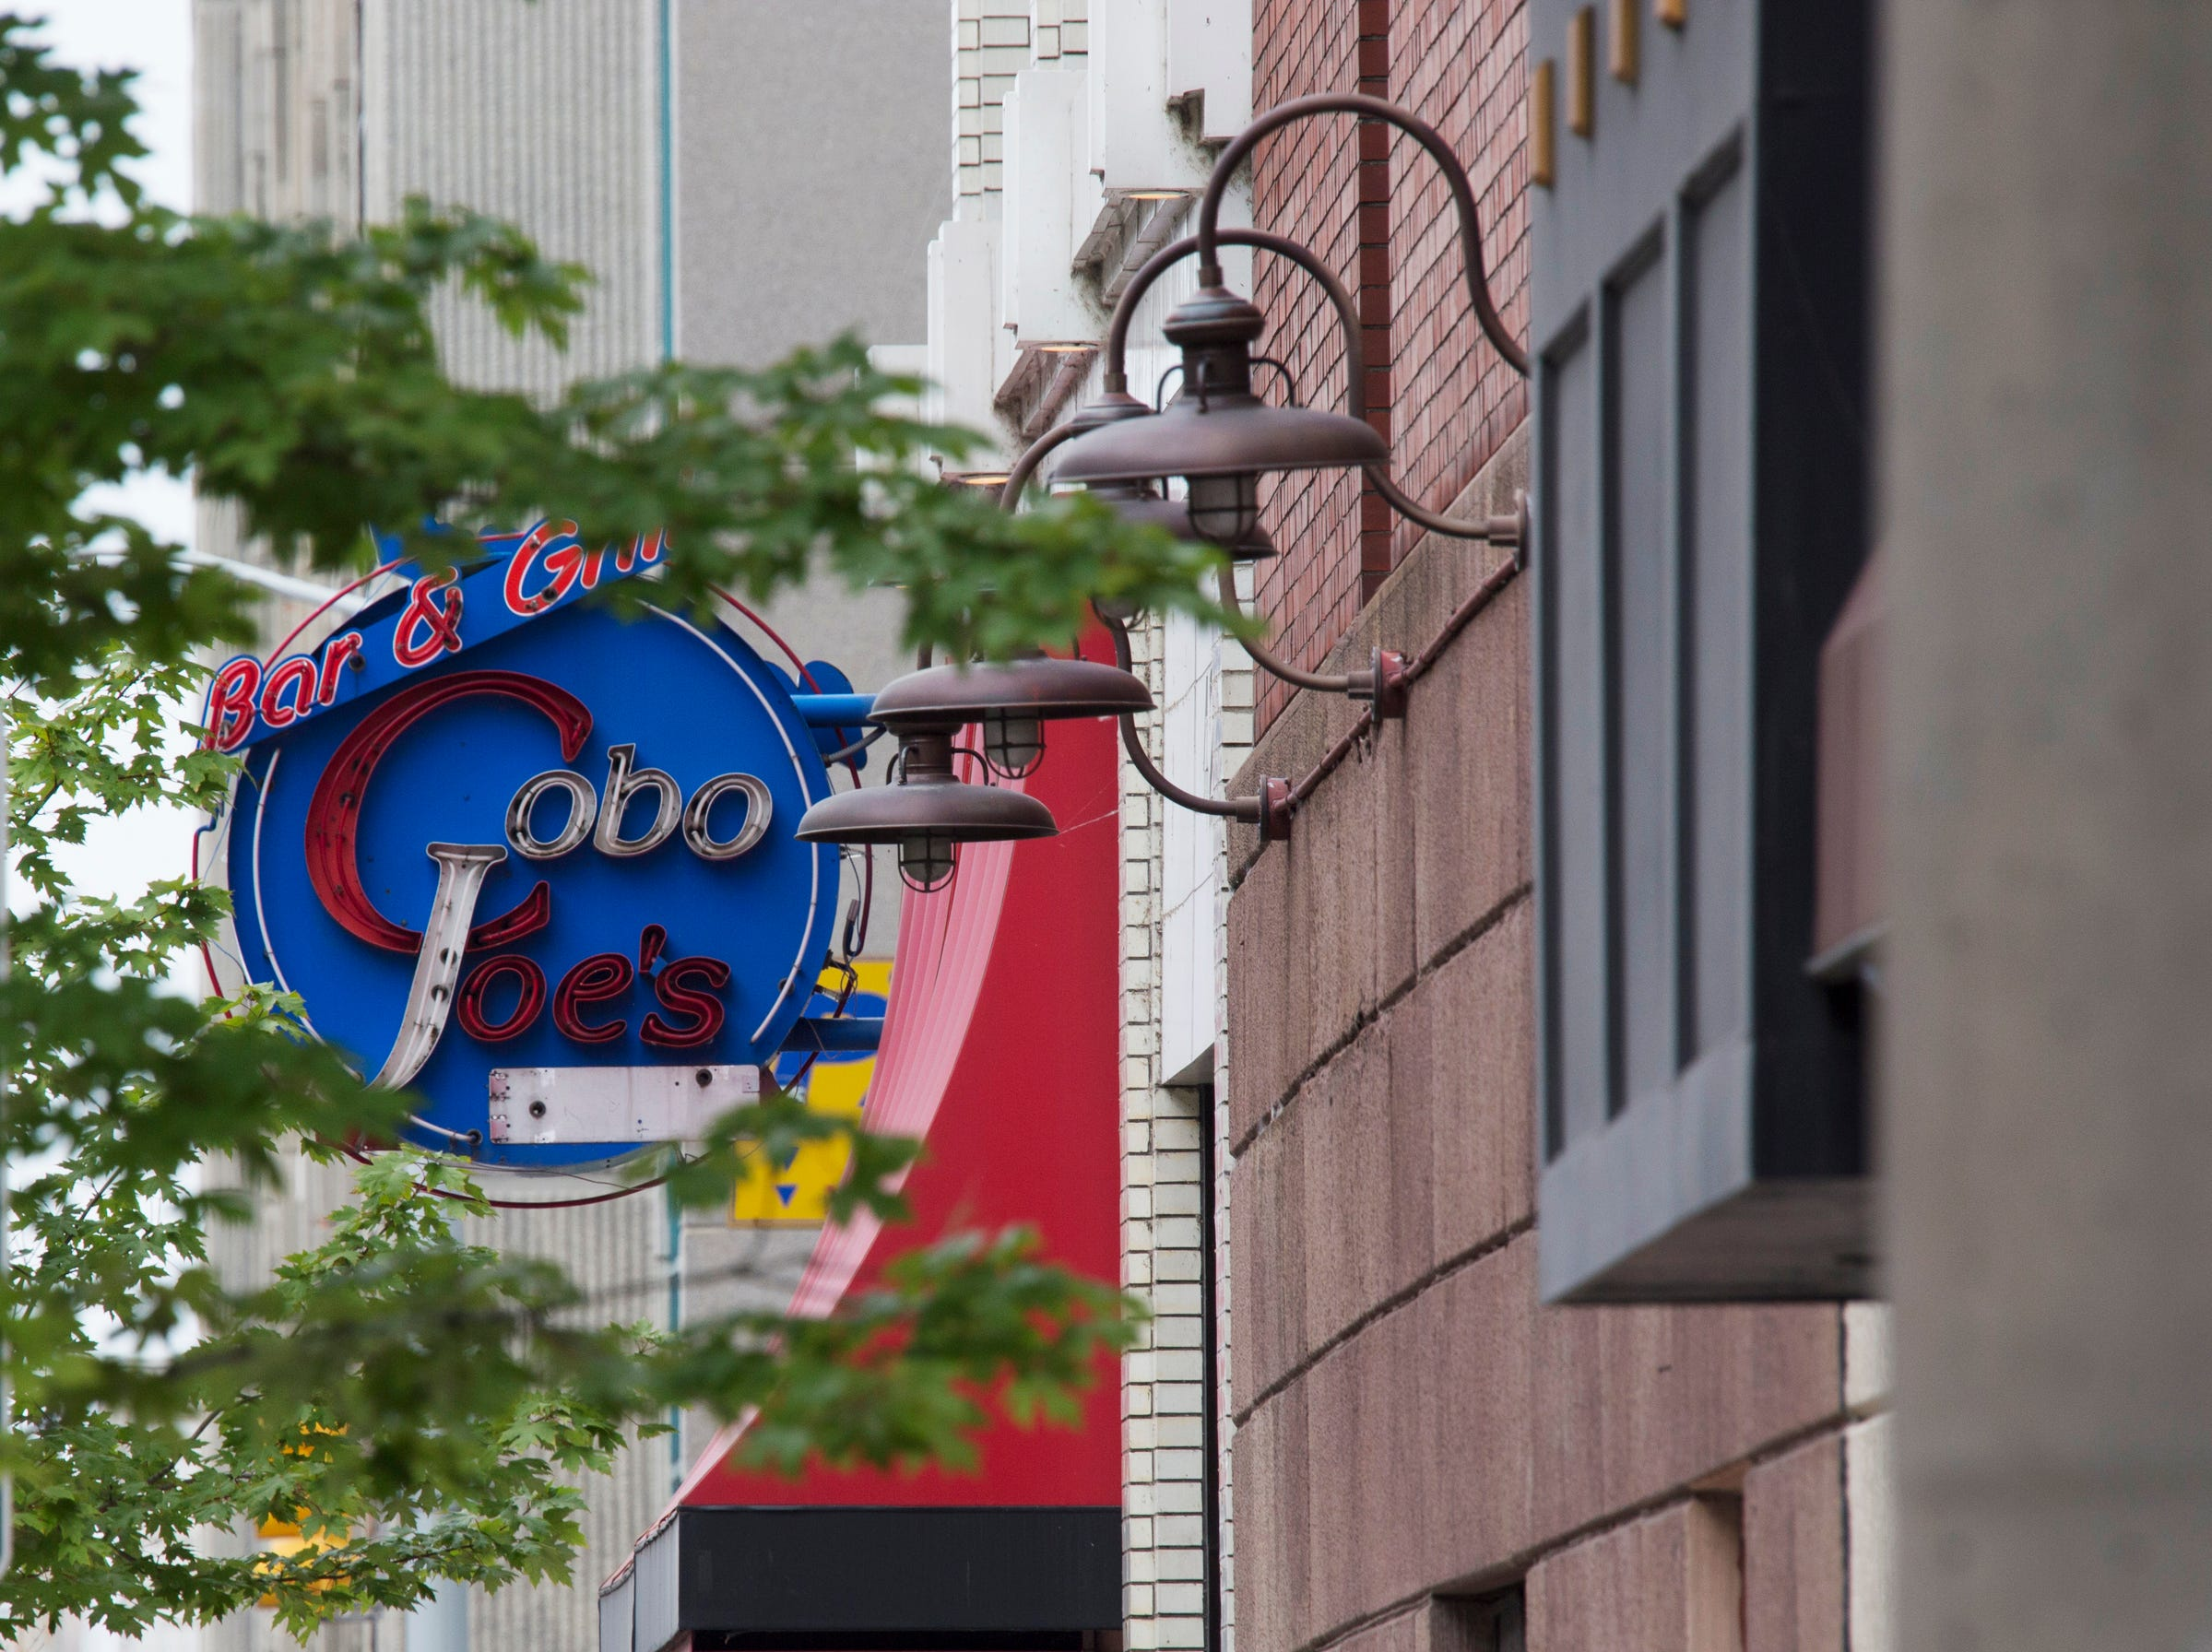 Cobo Joe's announced its closure after 37 years of business in Detroit.